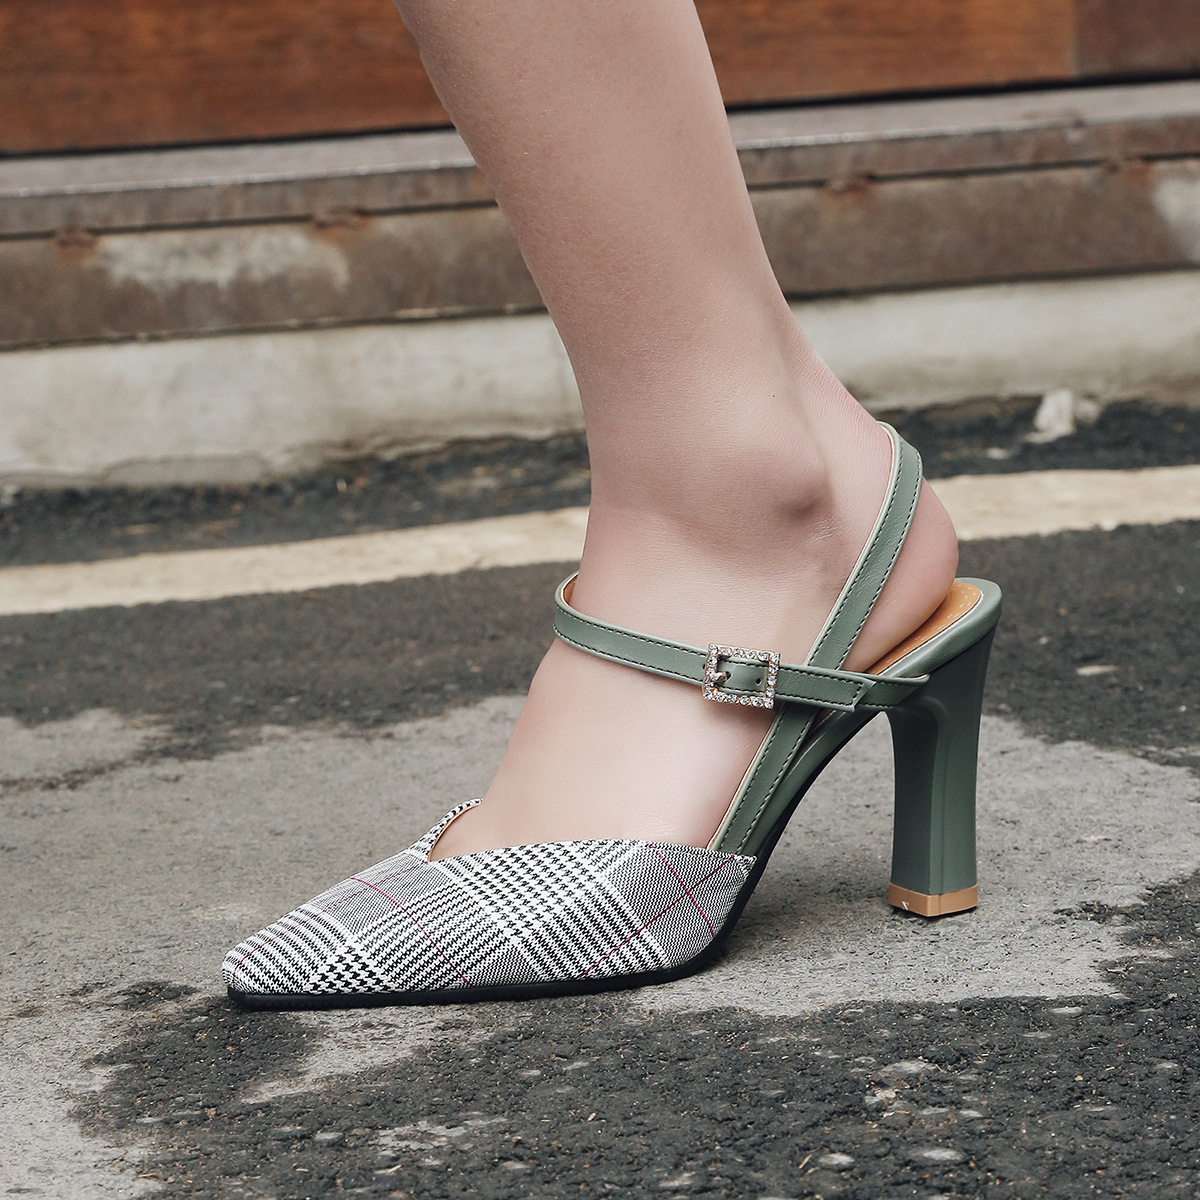 2019 summer new fashion with pointed four seasons women 39 s shoes large size sandals in Women 39 s Vulcanize Shoes from Shoes